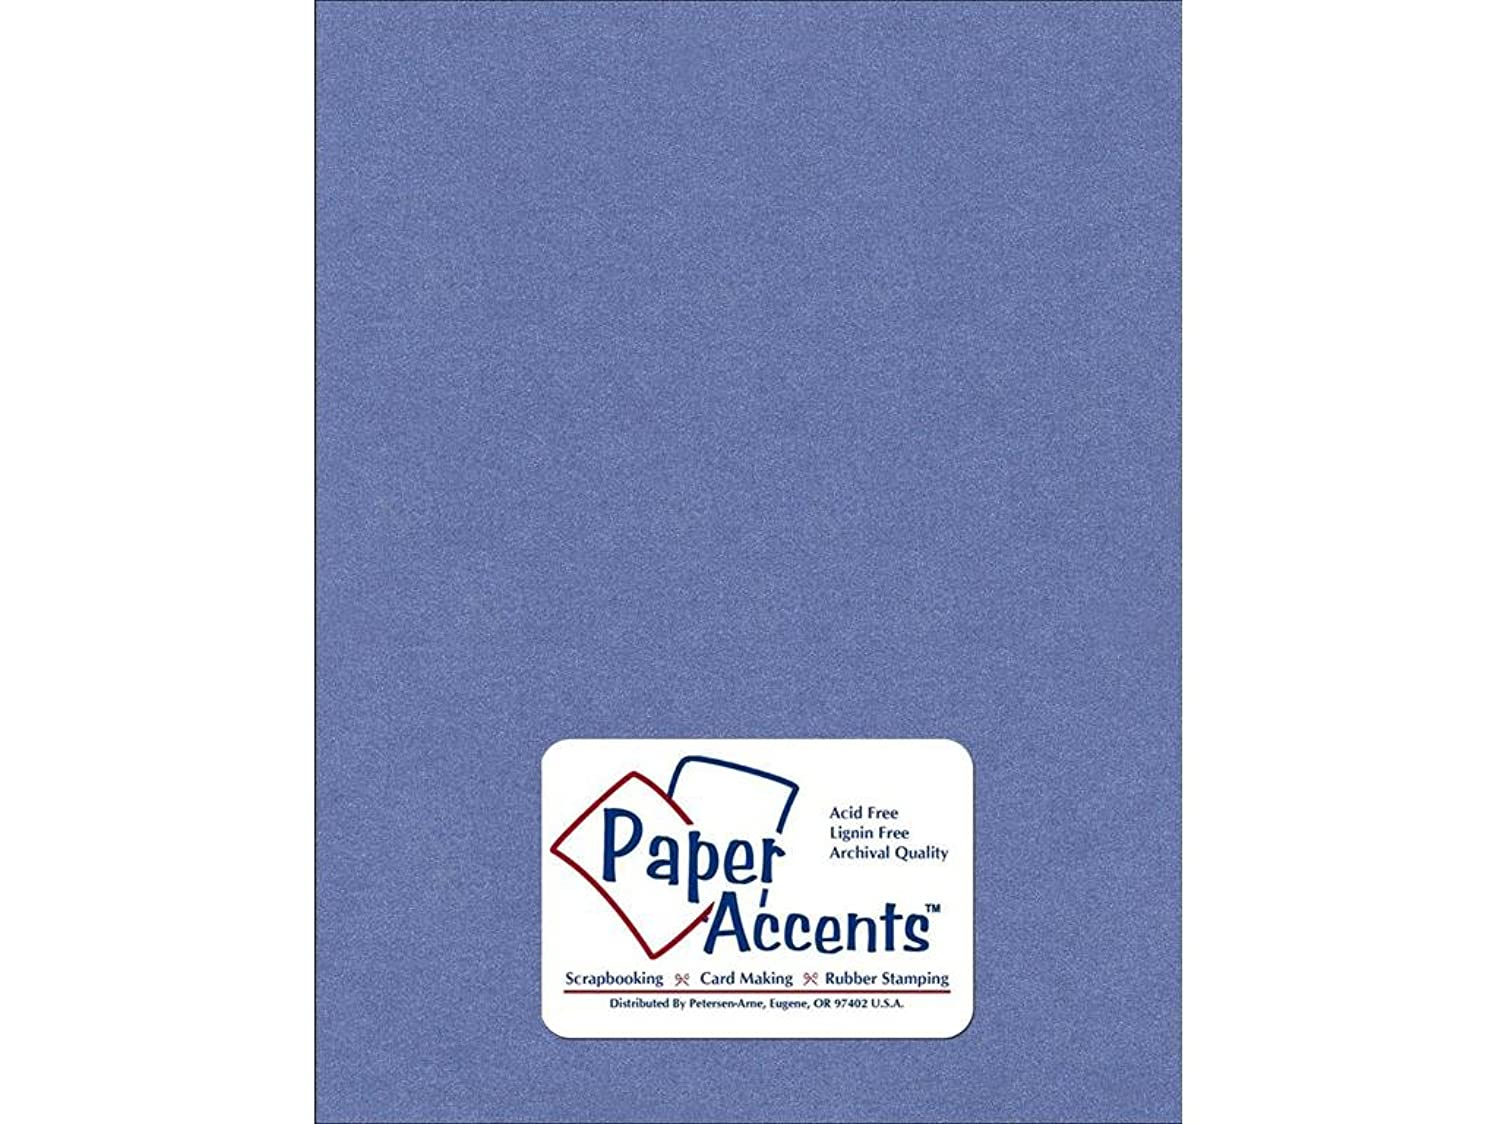 Accent Design Paper Accents PearlizedCdstk8511Blue Cdstk Pearlized 8.5x11 105# Blue Star